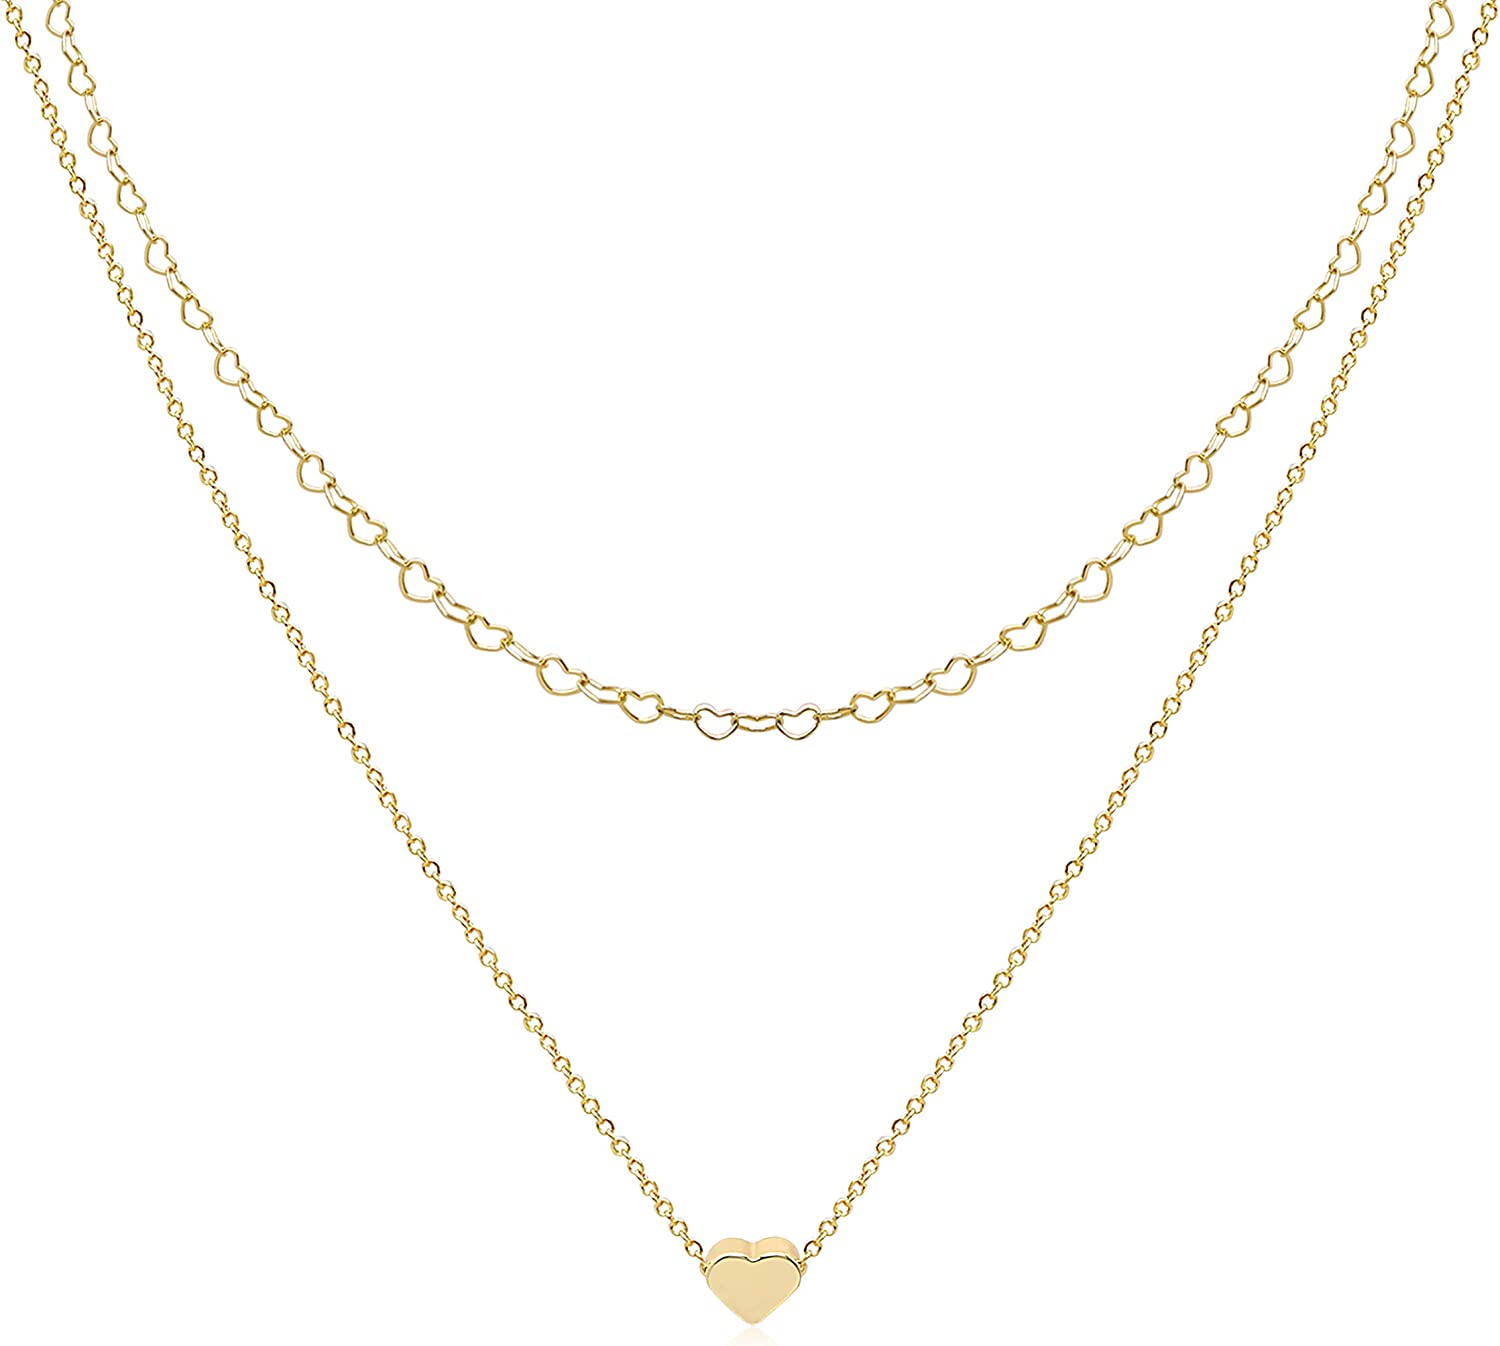 Cryshimmer Layered Choker Necklaces for Women 14K Gold Plated Handmade Dainty Tiny Star Heart Butterfly Cross Bar Pendant Adjustable Layering Gold Necklaces Minimalist Jewelry Gift